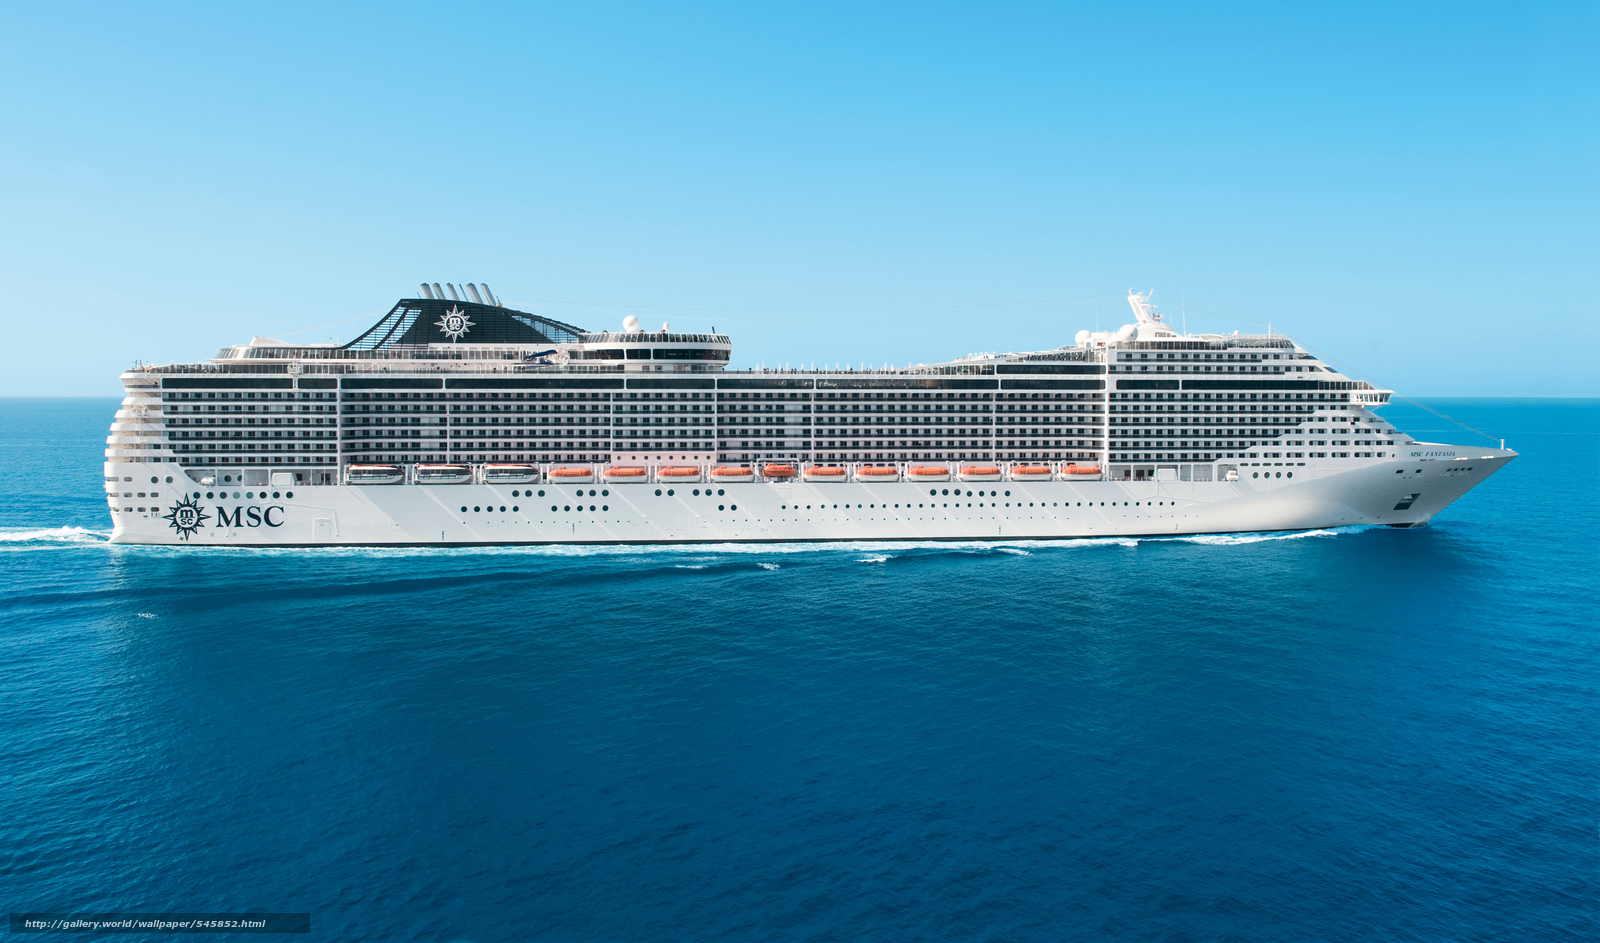 Download wallpaper MSC Fantasia Cruise Ship desktop wallpaper 1600x943